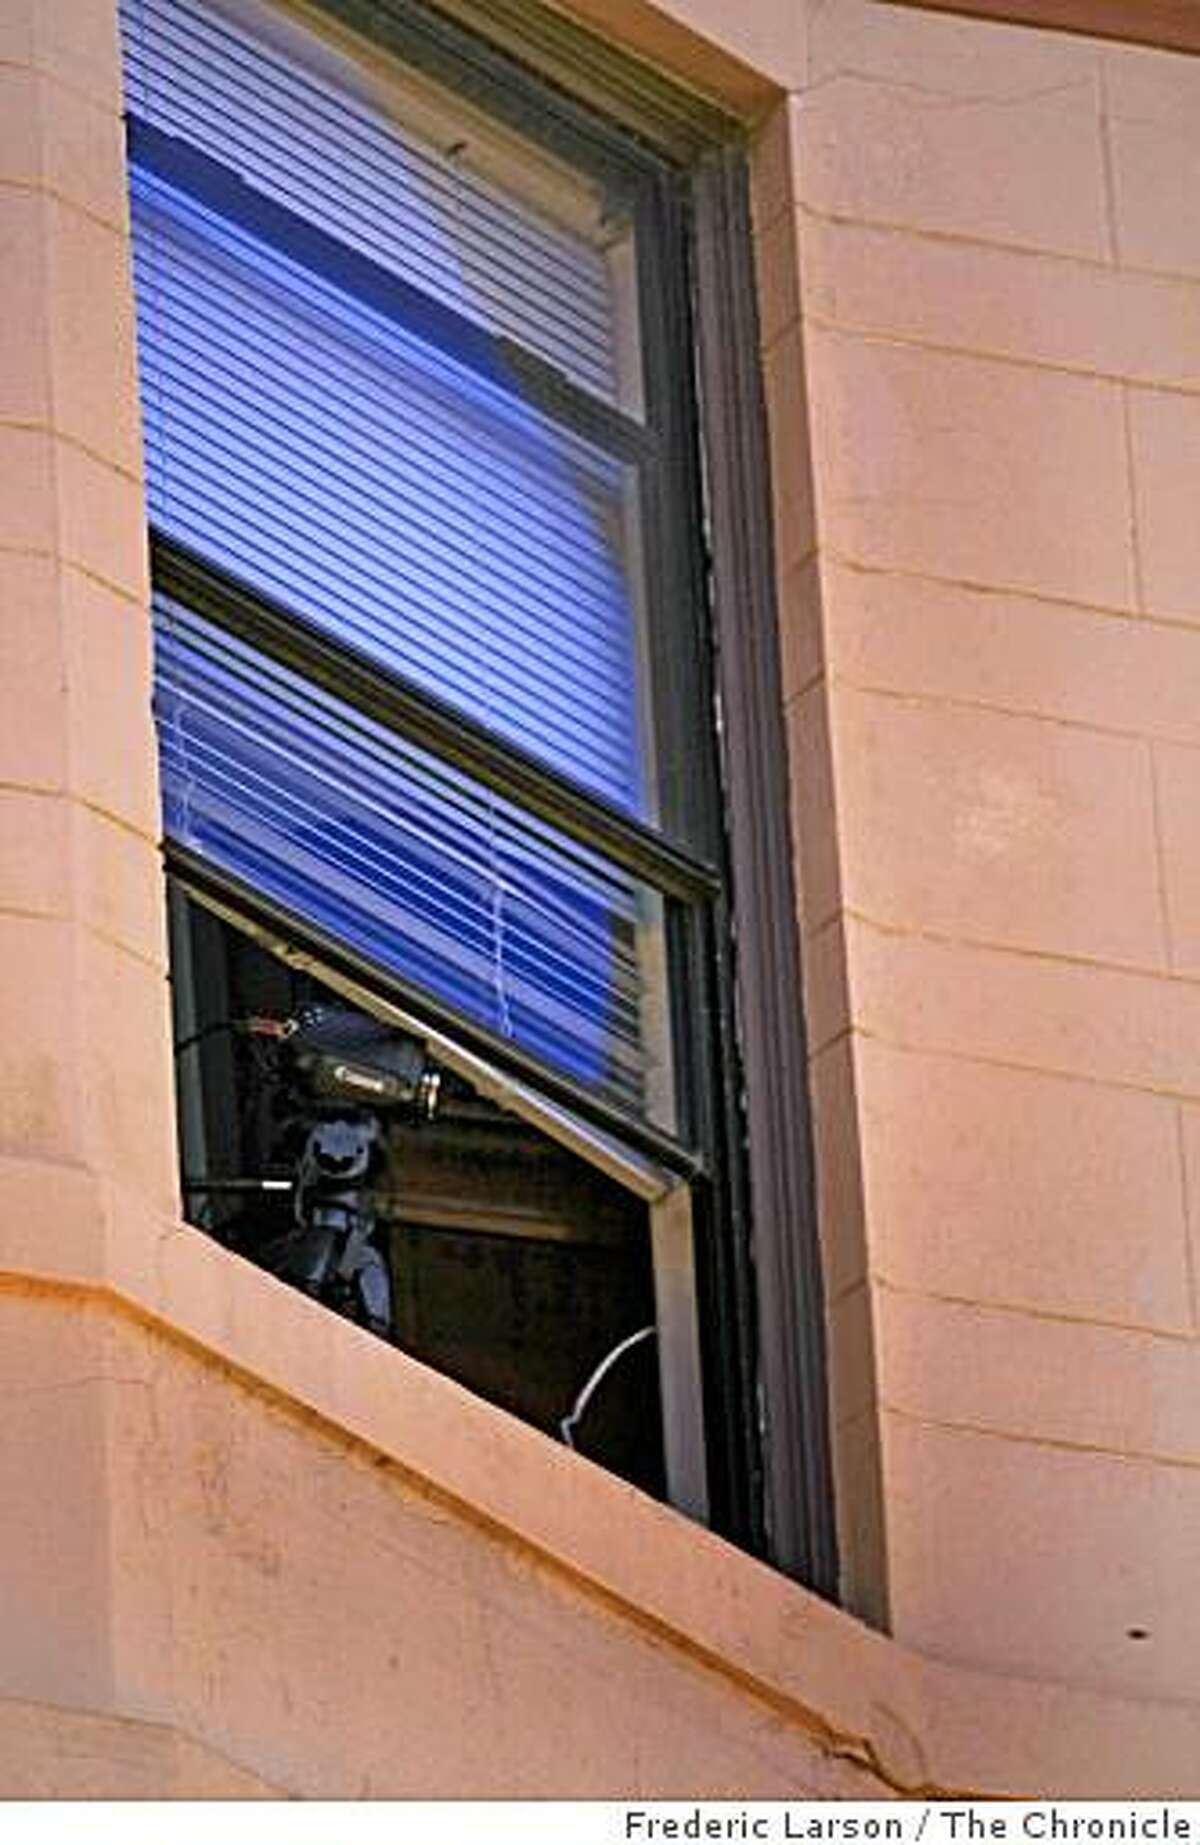 A 24 hour web camera is placed in the window of Adam Jackson's apartment which is pointed sourthward down Taylor Street on December 5, 2008 in San Francisco, Calif.